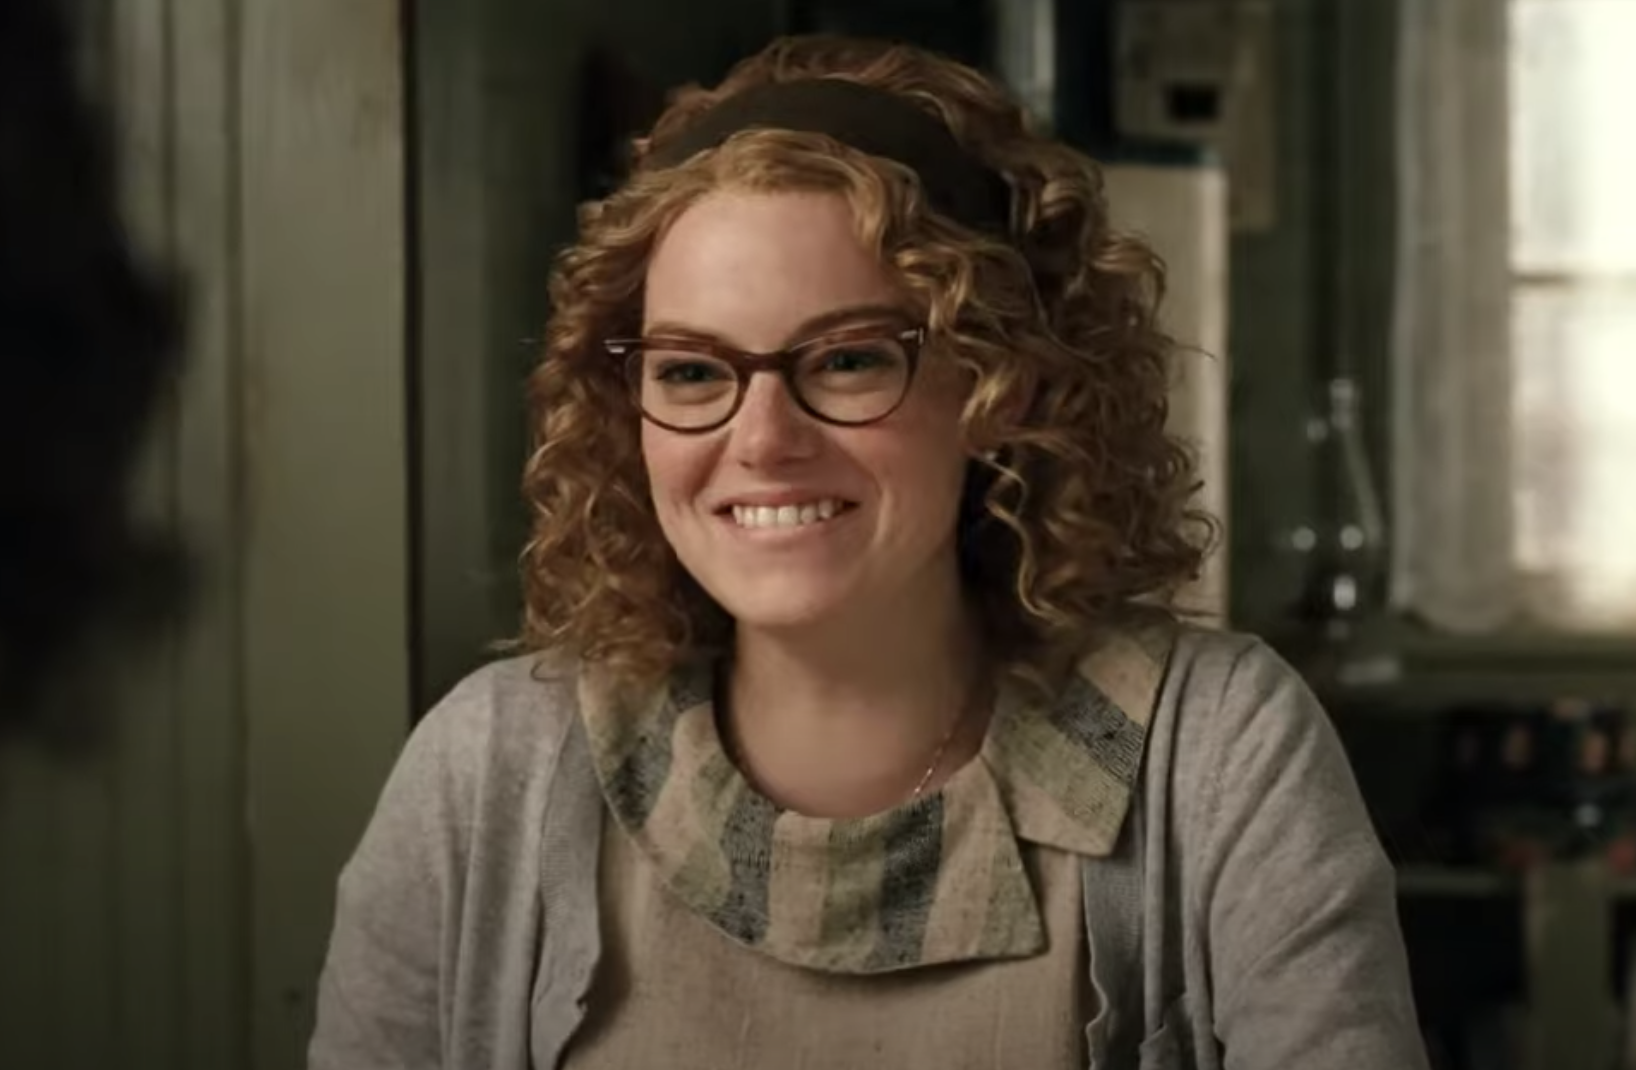 Emma Stone with a short, curly wig